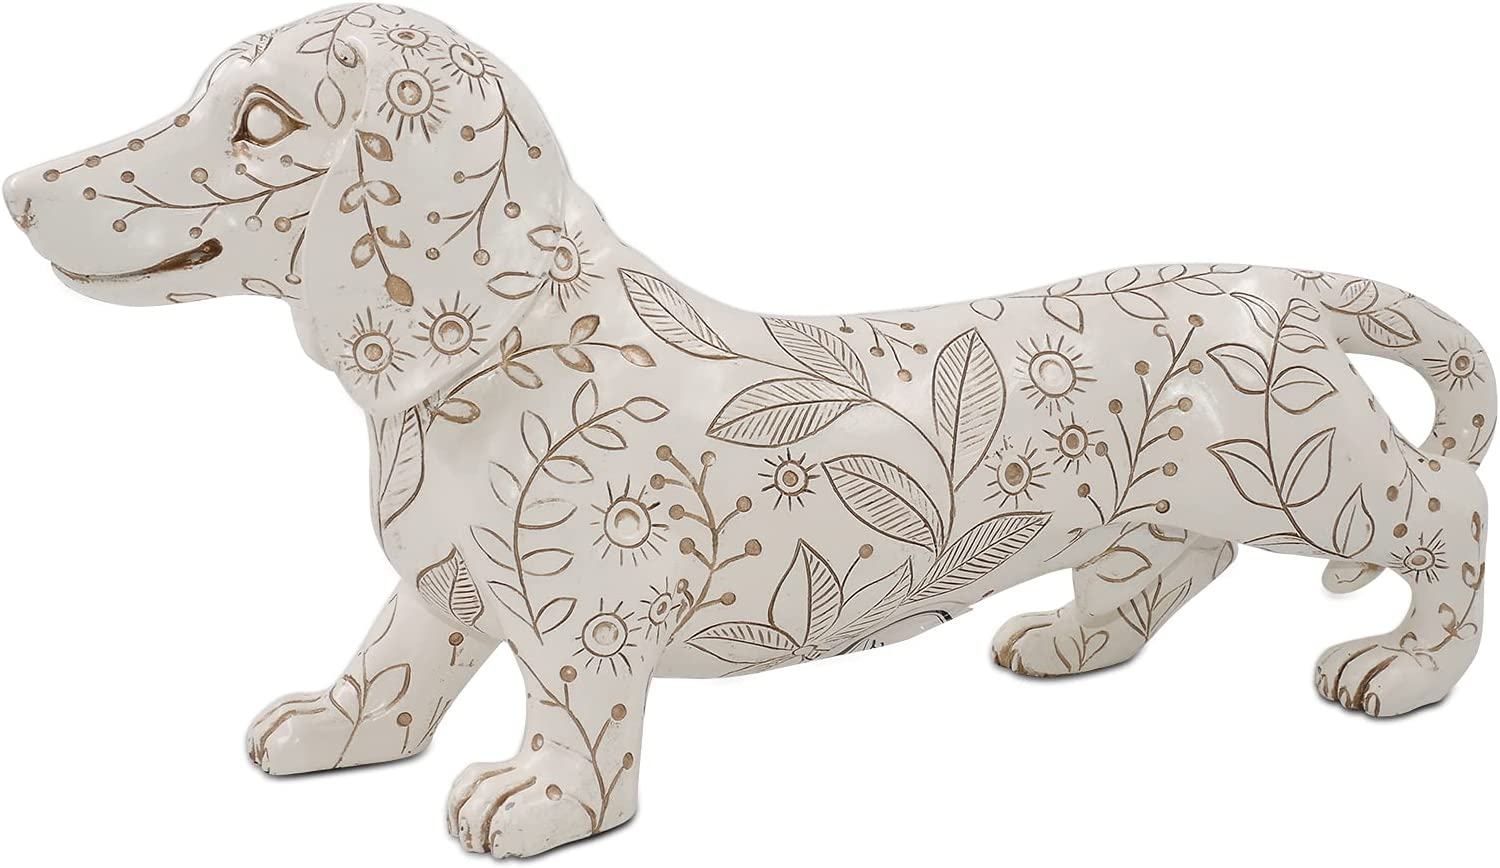 11'' Max 40% OFF Dog Figurines Dachshund Figurine New products world's highest quality popular Decora Home Statue Animal